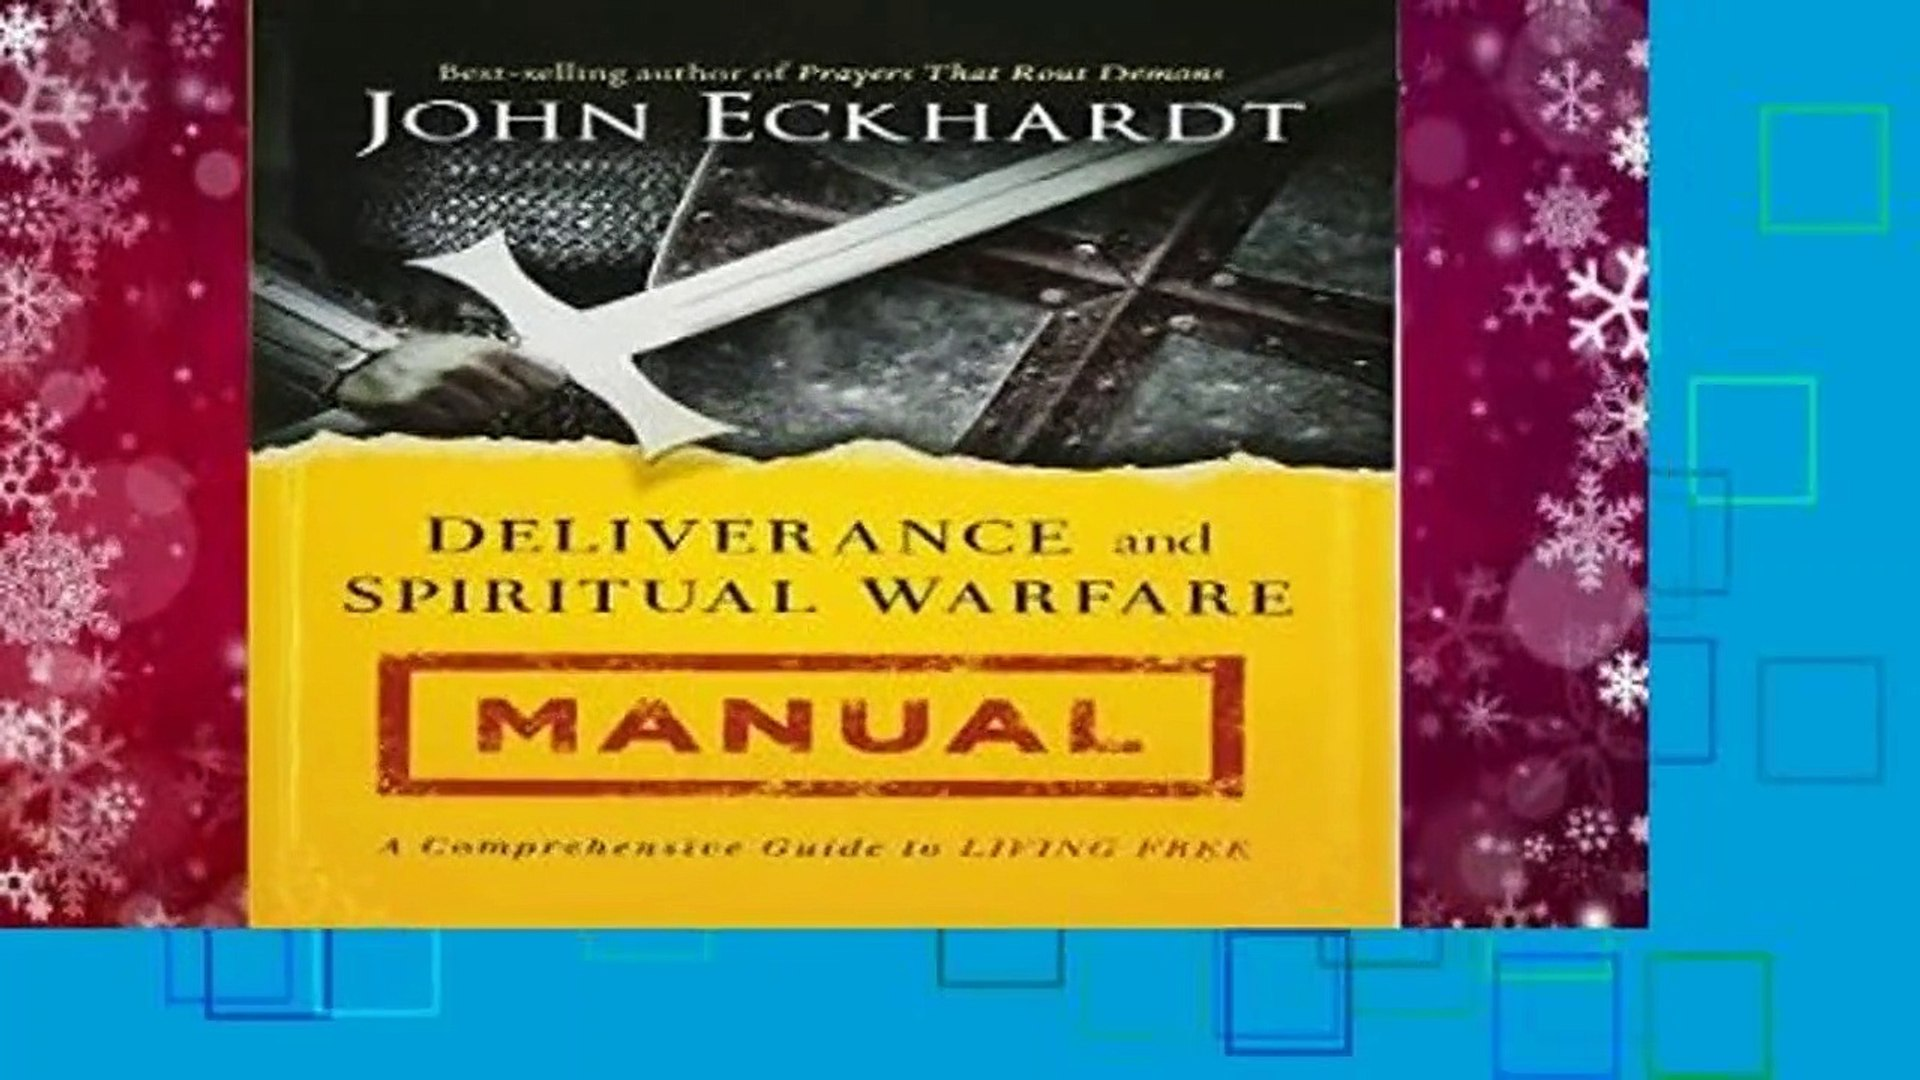 [MOST WISHED]  Deliverance and Spiritual Warfare Manual: A Comprehensive Guide to Living Free by